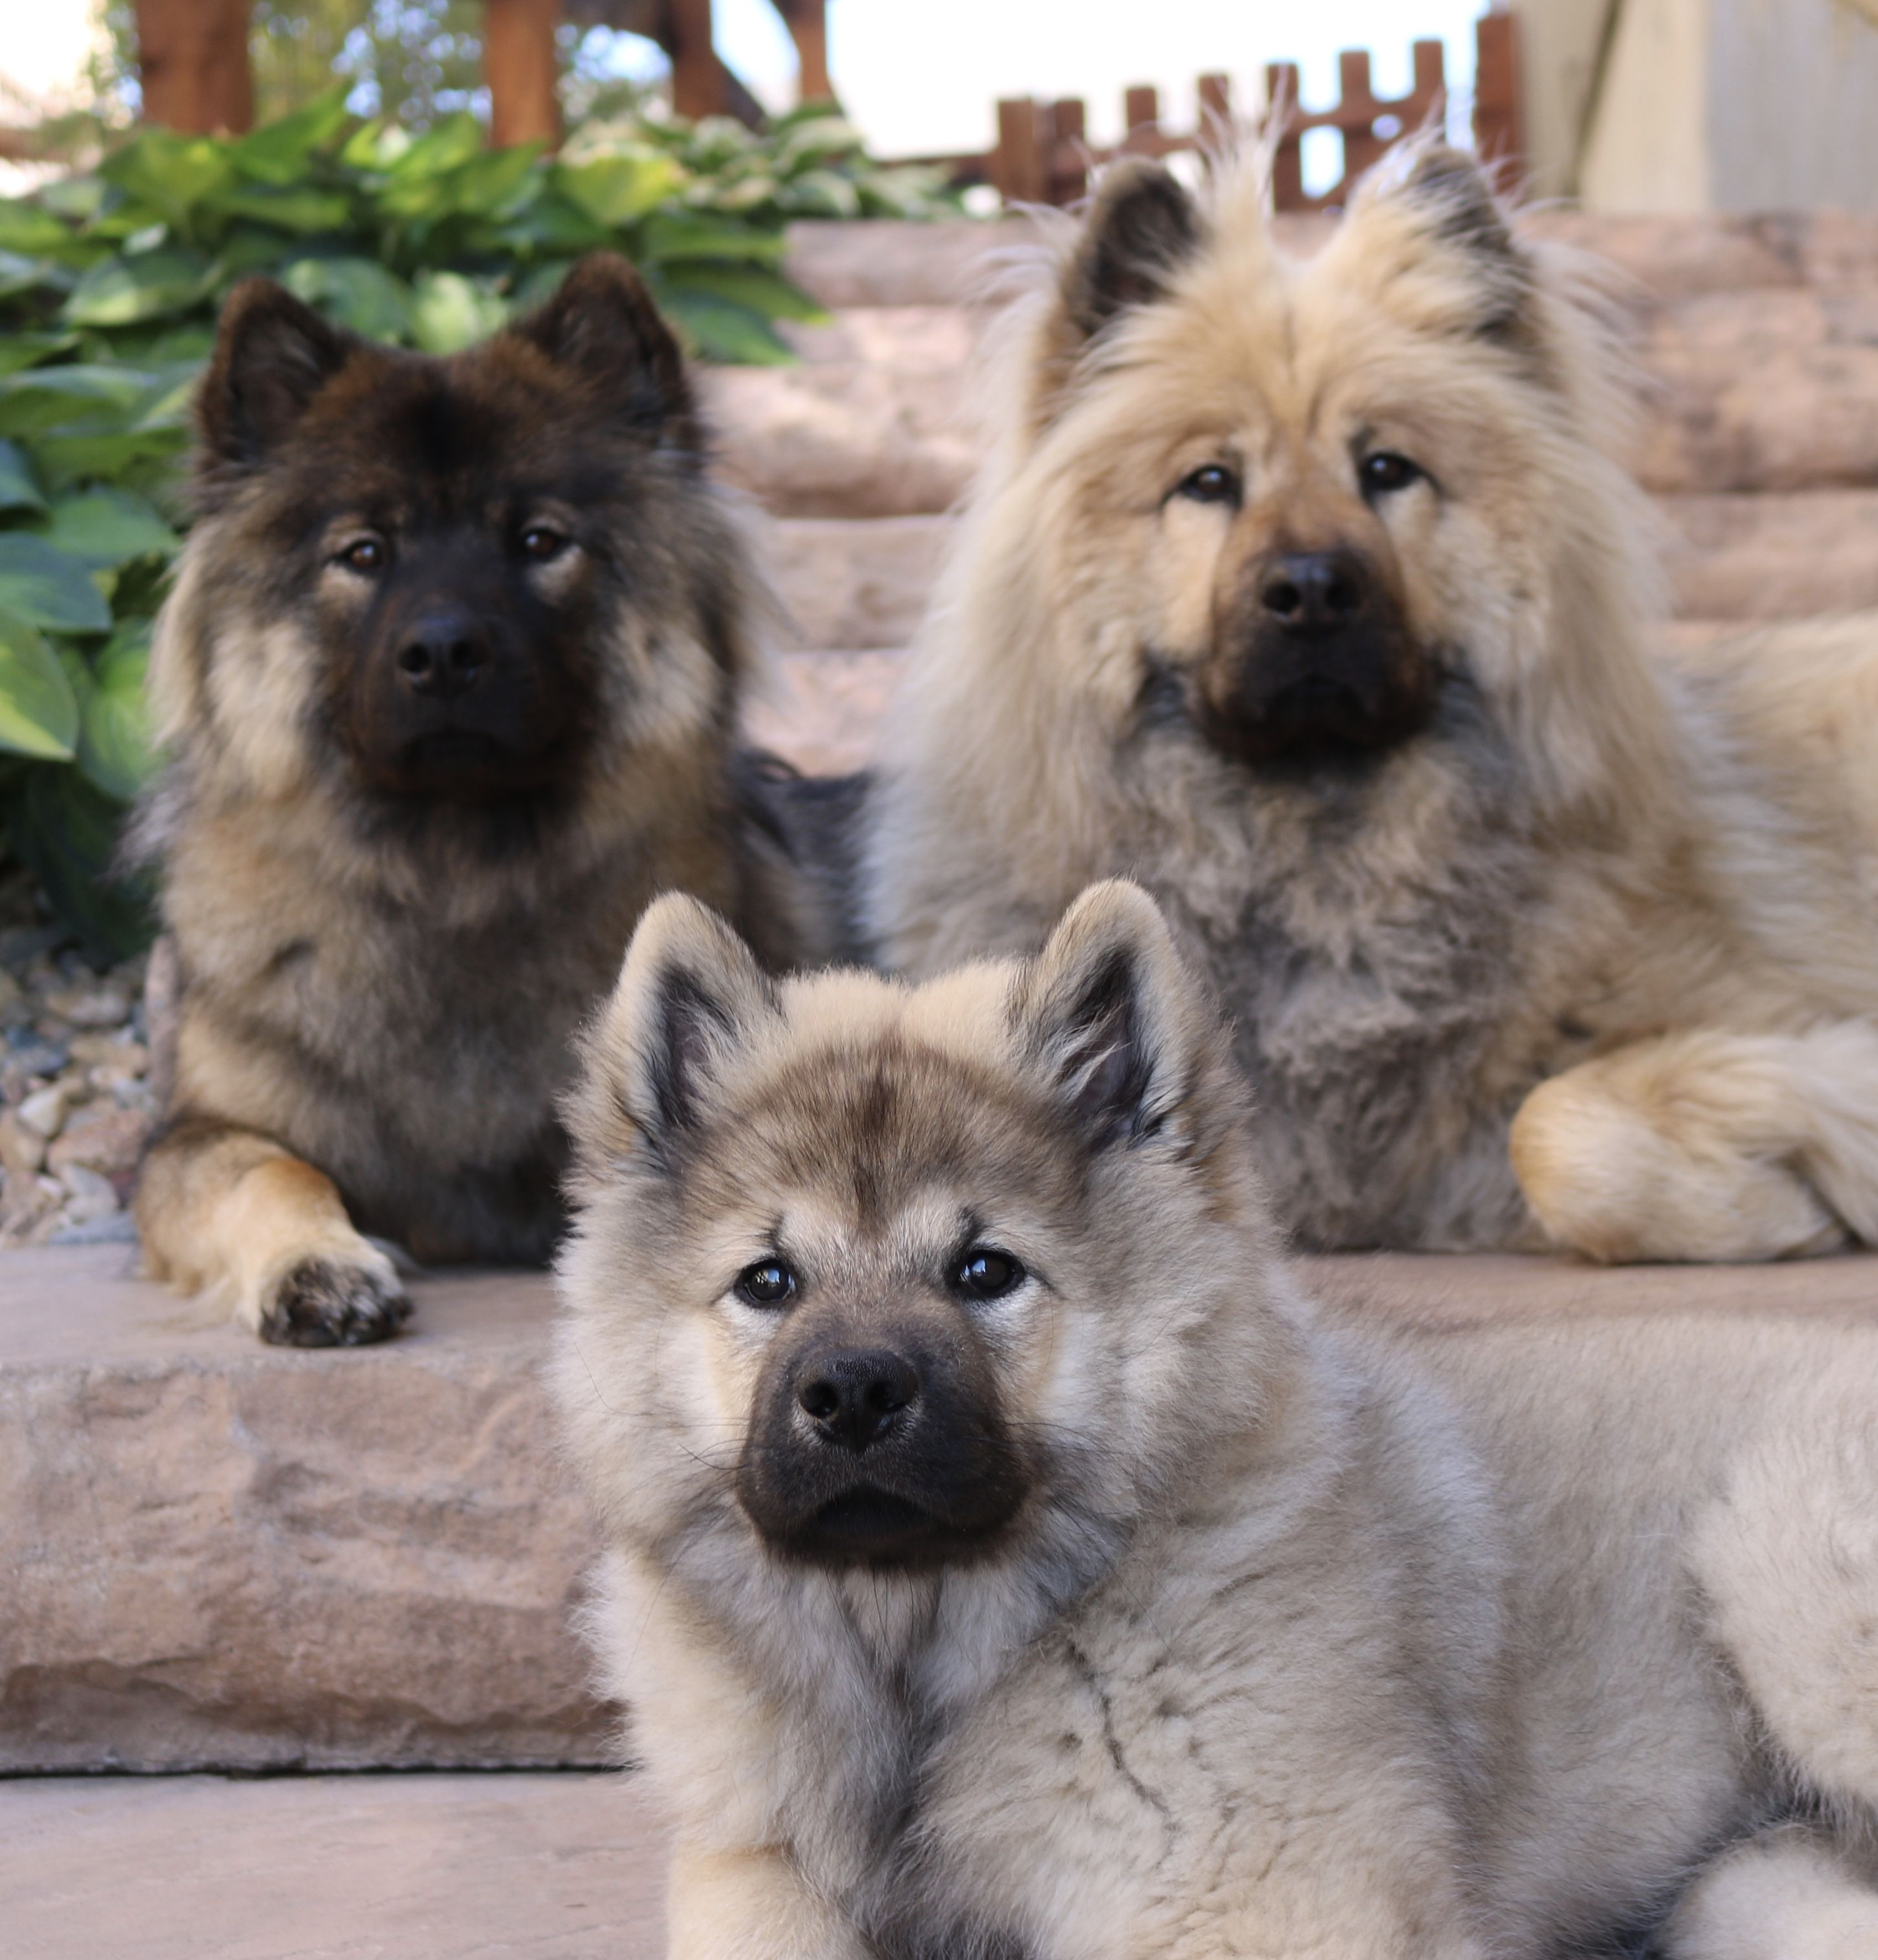 Pin By Jimmydog Pet Portraits On Eurasier Dogs Cuddly Animals Cute Dogs Beautiful Dogs